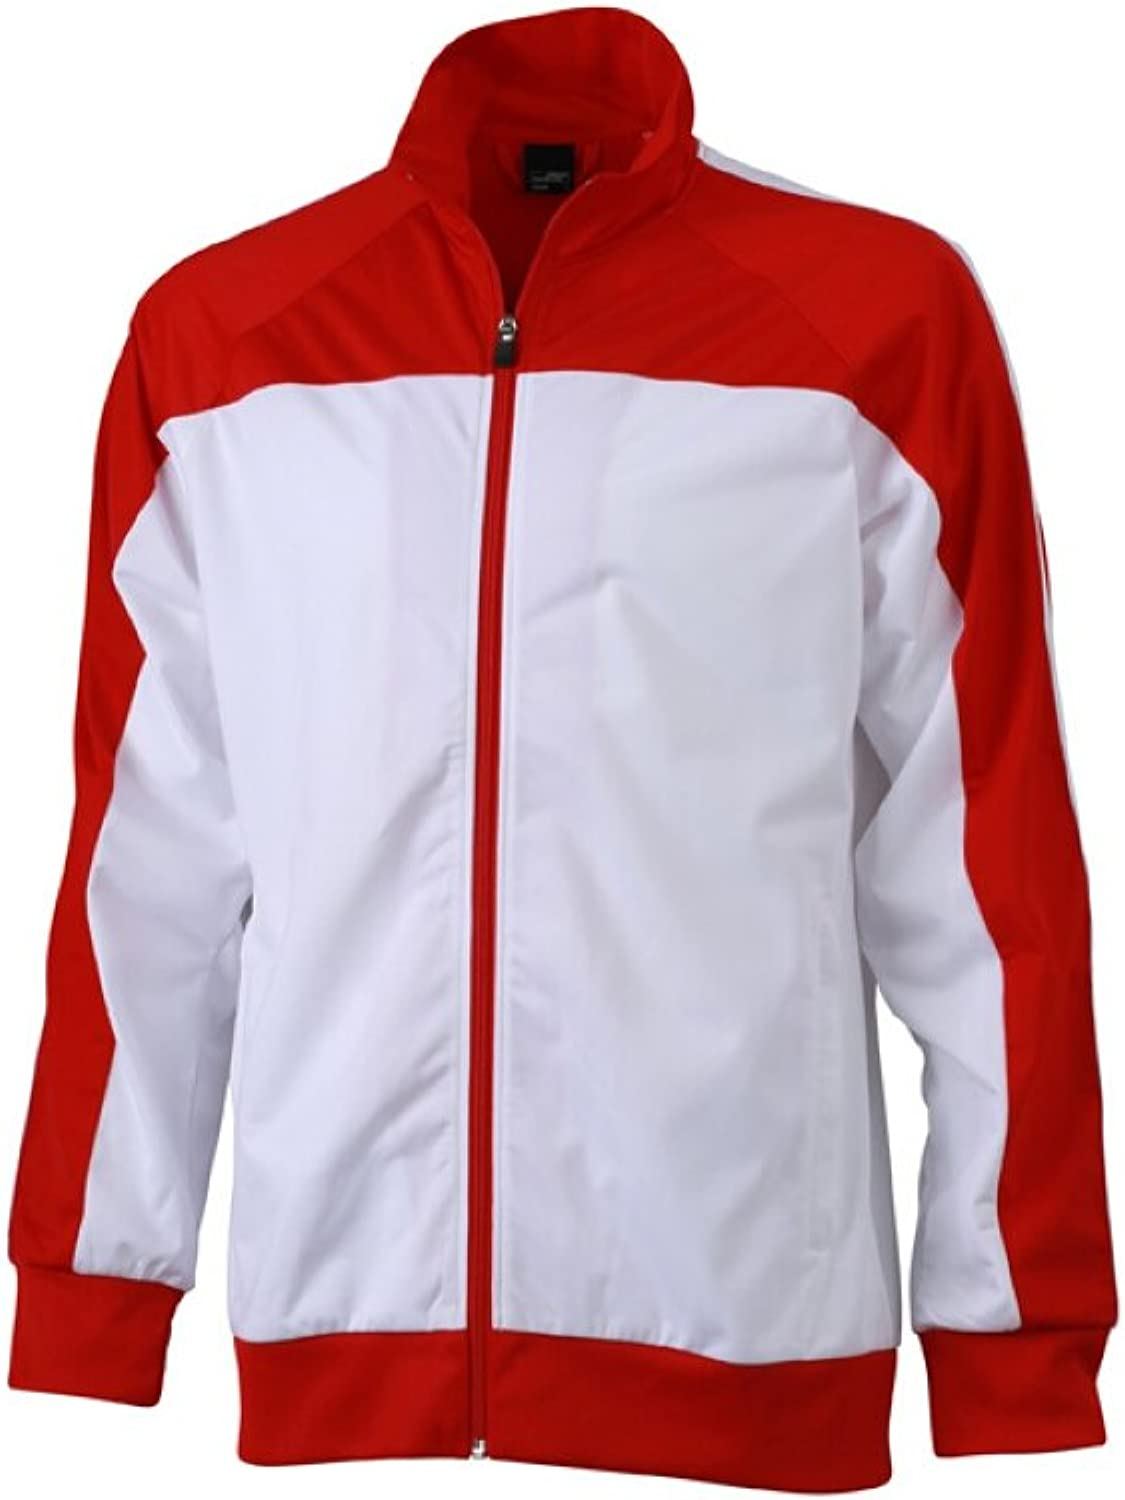 James & Nicholson Gym Suit for Training and Leisure